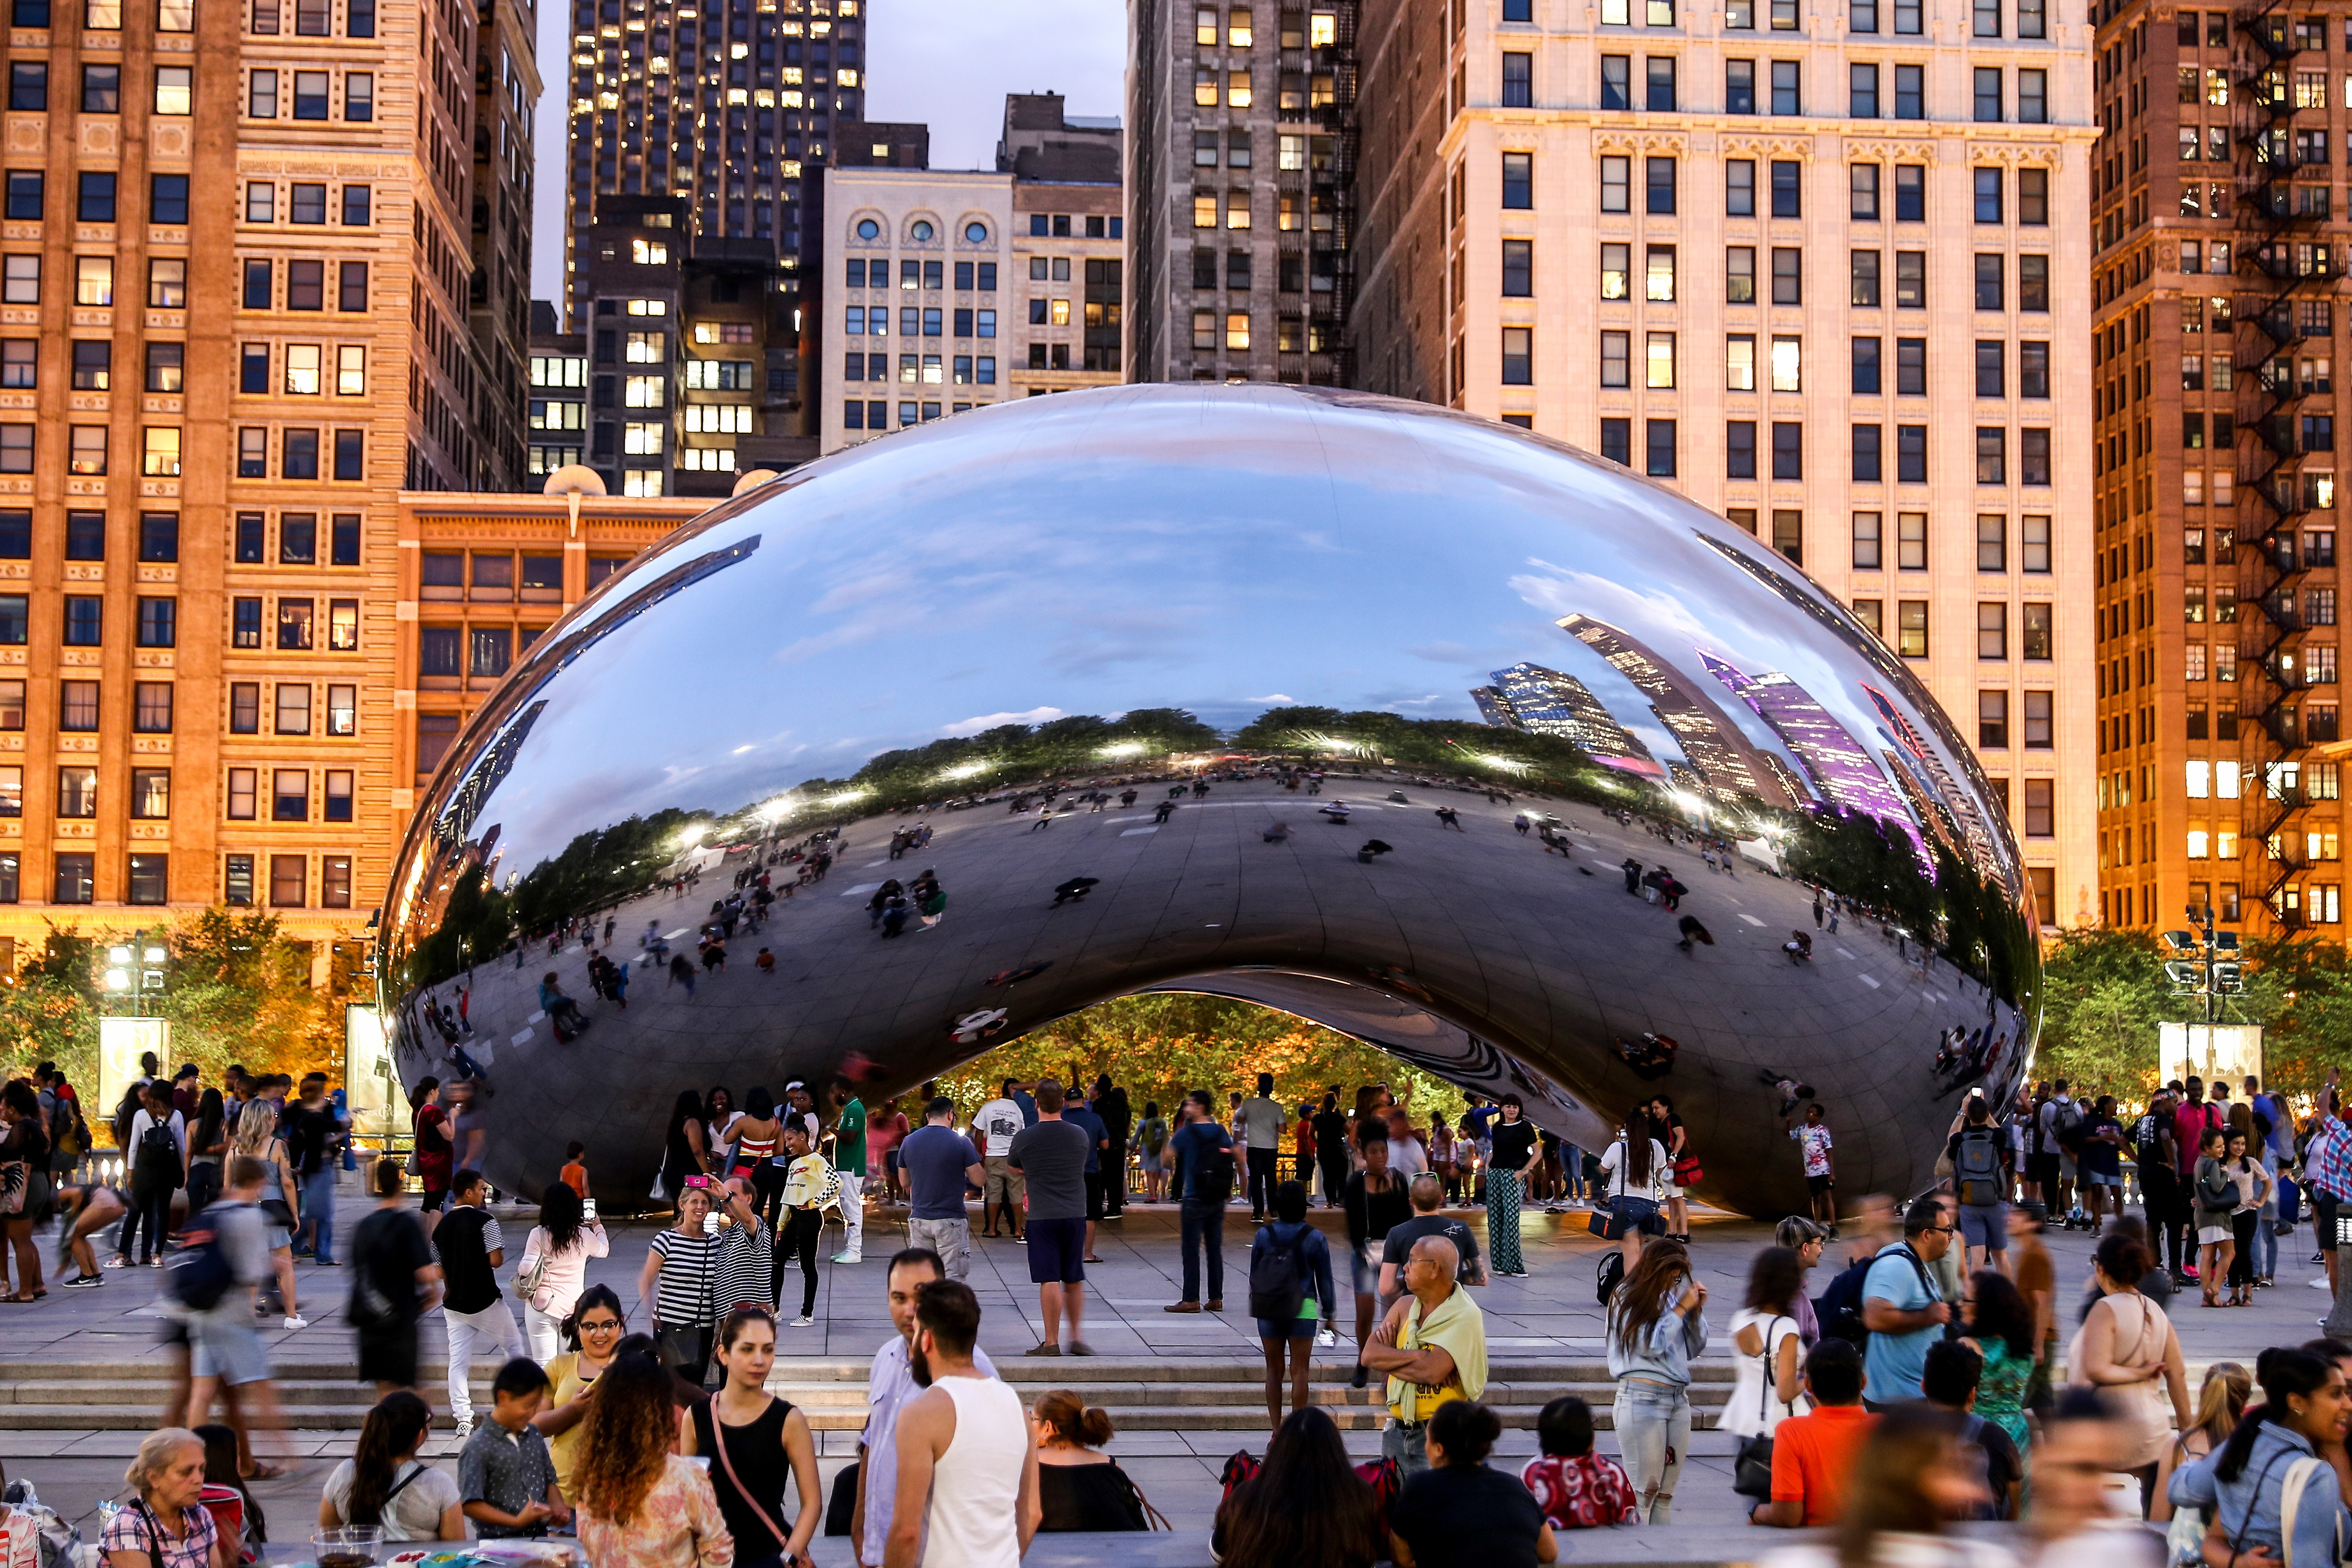 From a Possible Video of Banksy to the Vandalization of Chicago's Iconic Bean: The Best and Worst of the Art World This Week